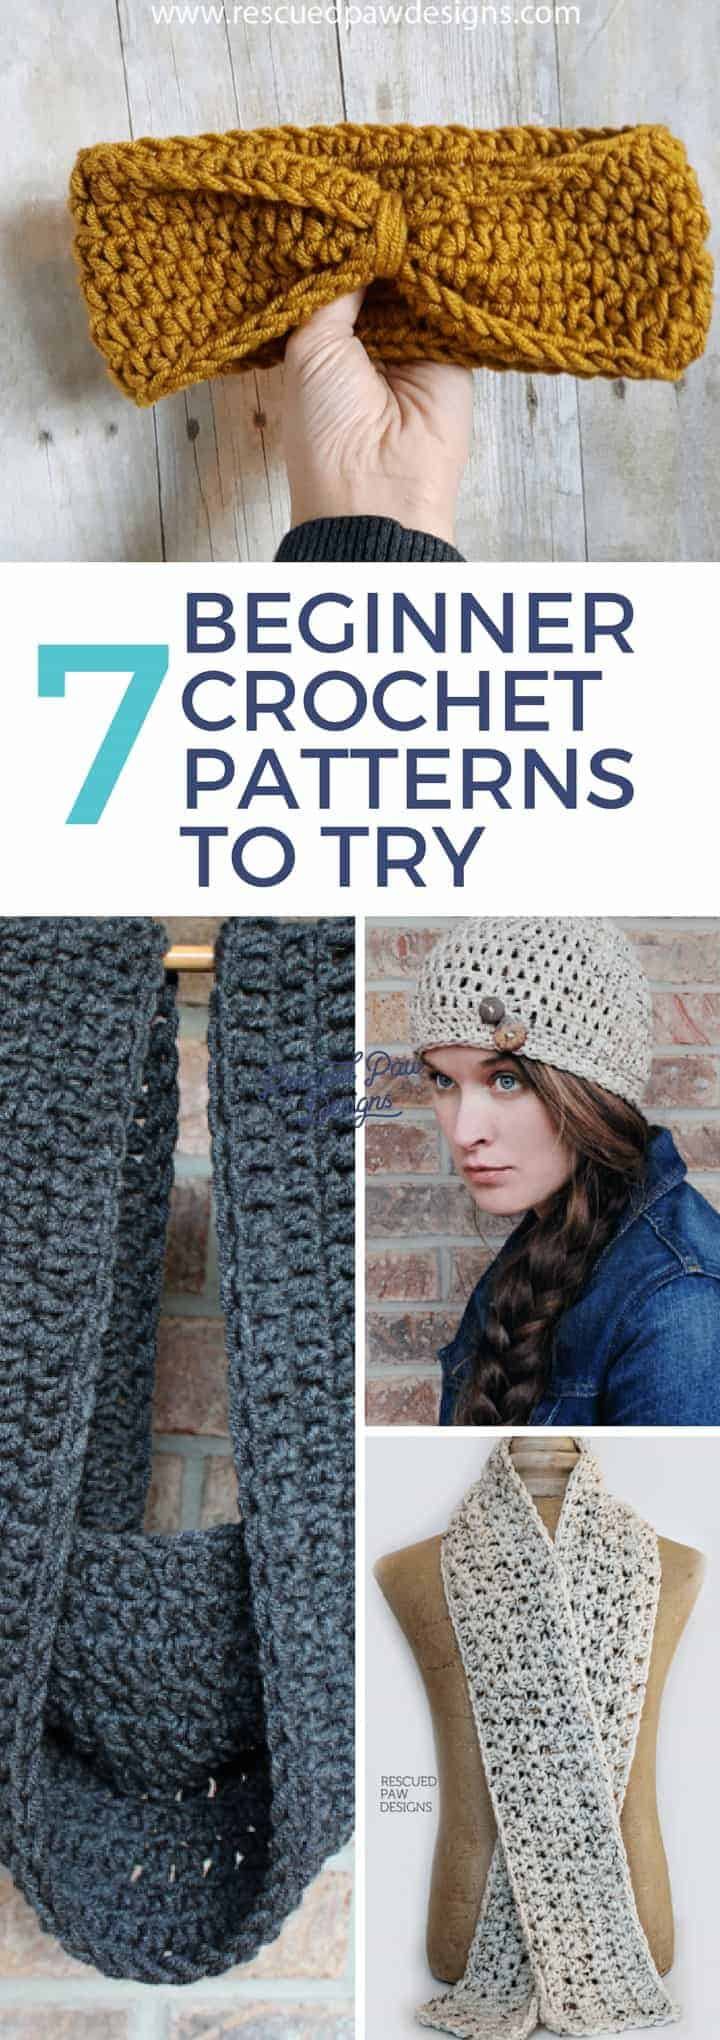 With a never ending supply of crochet tutorials for beginners I've handpicked some of my favorites that contain some of the best crochet stitches for beginner crocheters! I know when I was first starting it was hard to find easy patterns to get me started. I always felt intimidated and worried that I couldn't finish a pattern. With this list of easy beginner crochet patterns you will not have to worry about that. I handpicked these to be easy to read and to work up. To start your new project just read on down to find the full list of free crochet patterns for beginners!